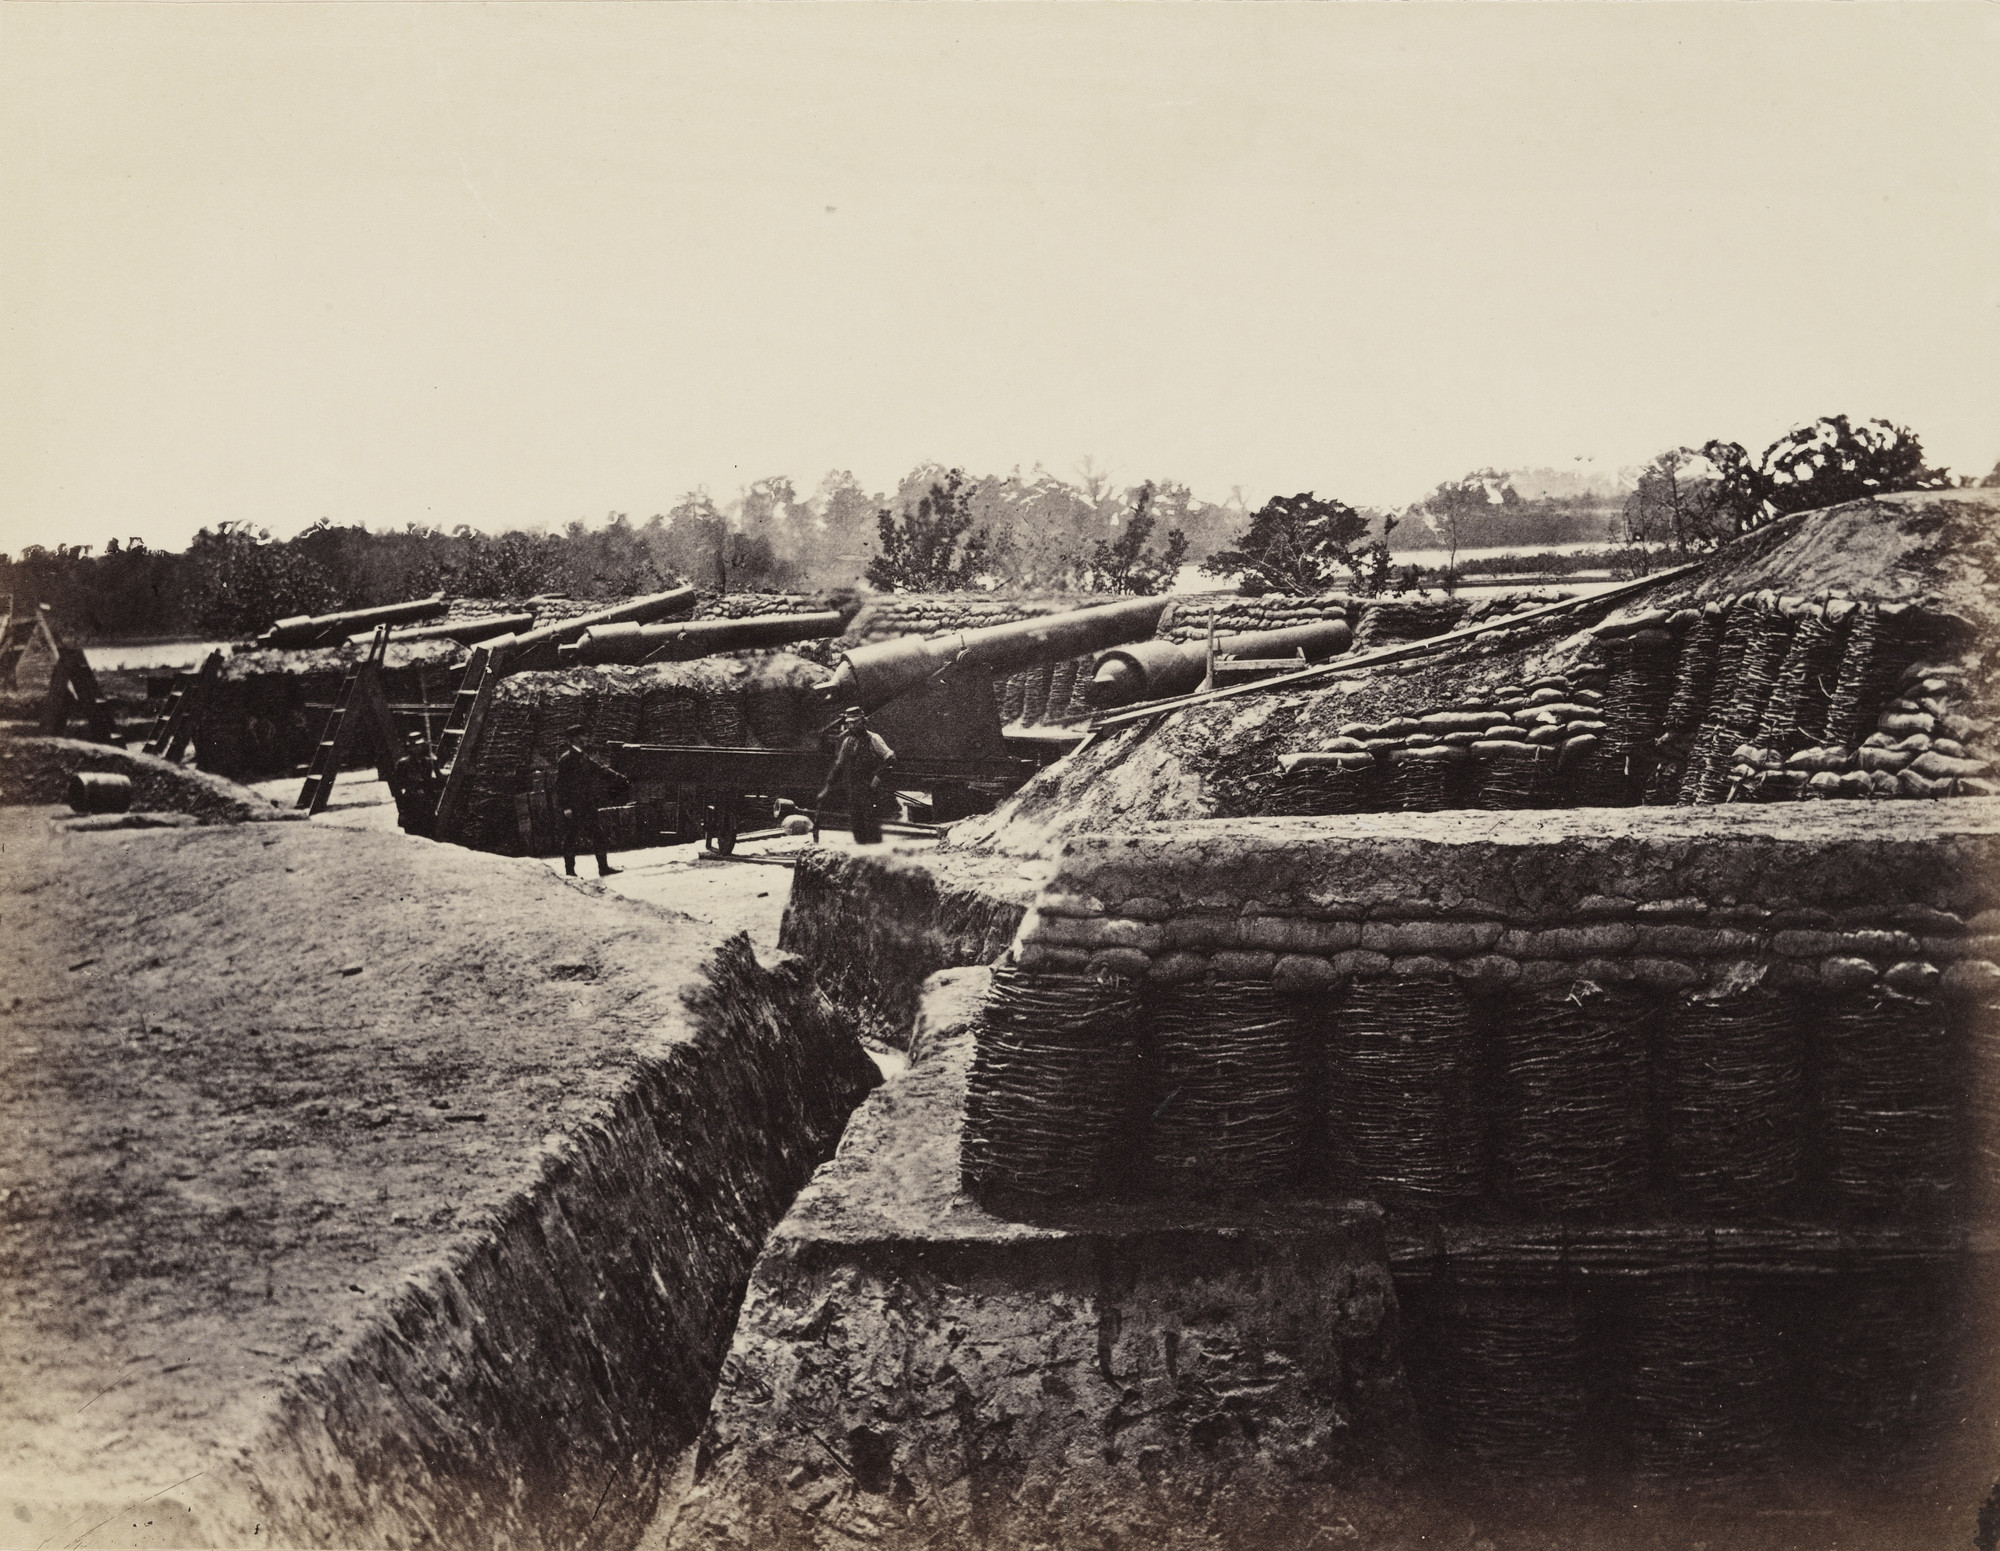 Alexander Gardner. Battery No 1, near Yorktown, Virginia. May, 1862